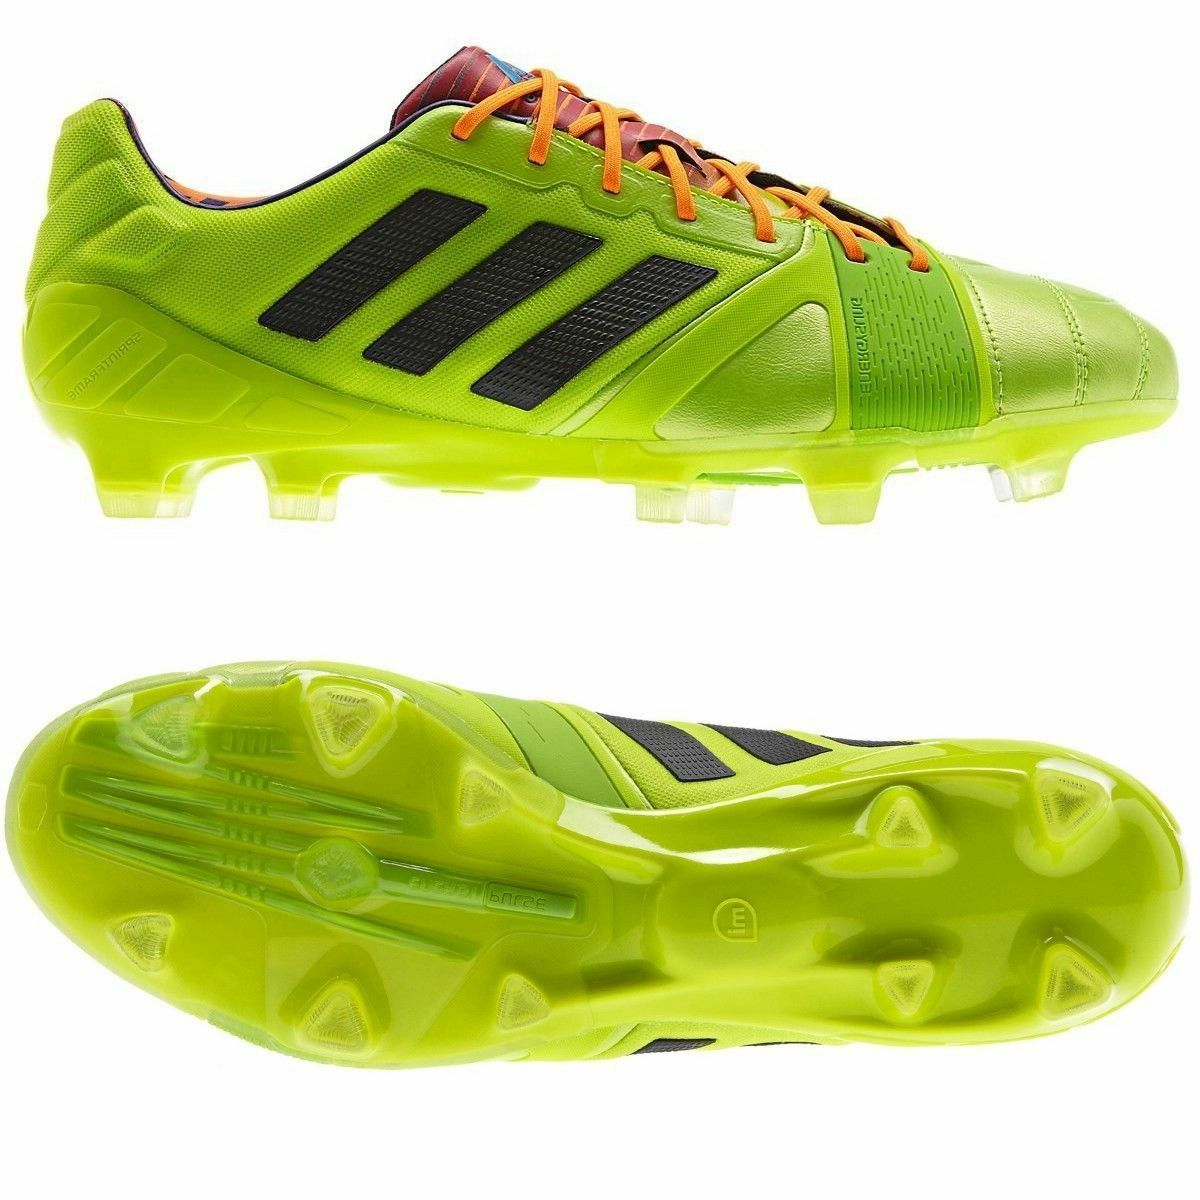 huge selection of c99c2 96e91 Adidas Nitrocharge 1.0 TRX FG Lime Green Performance Mens Football Soccer  Boots